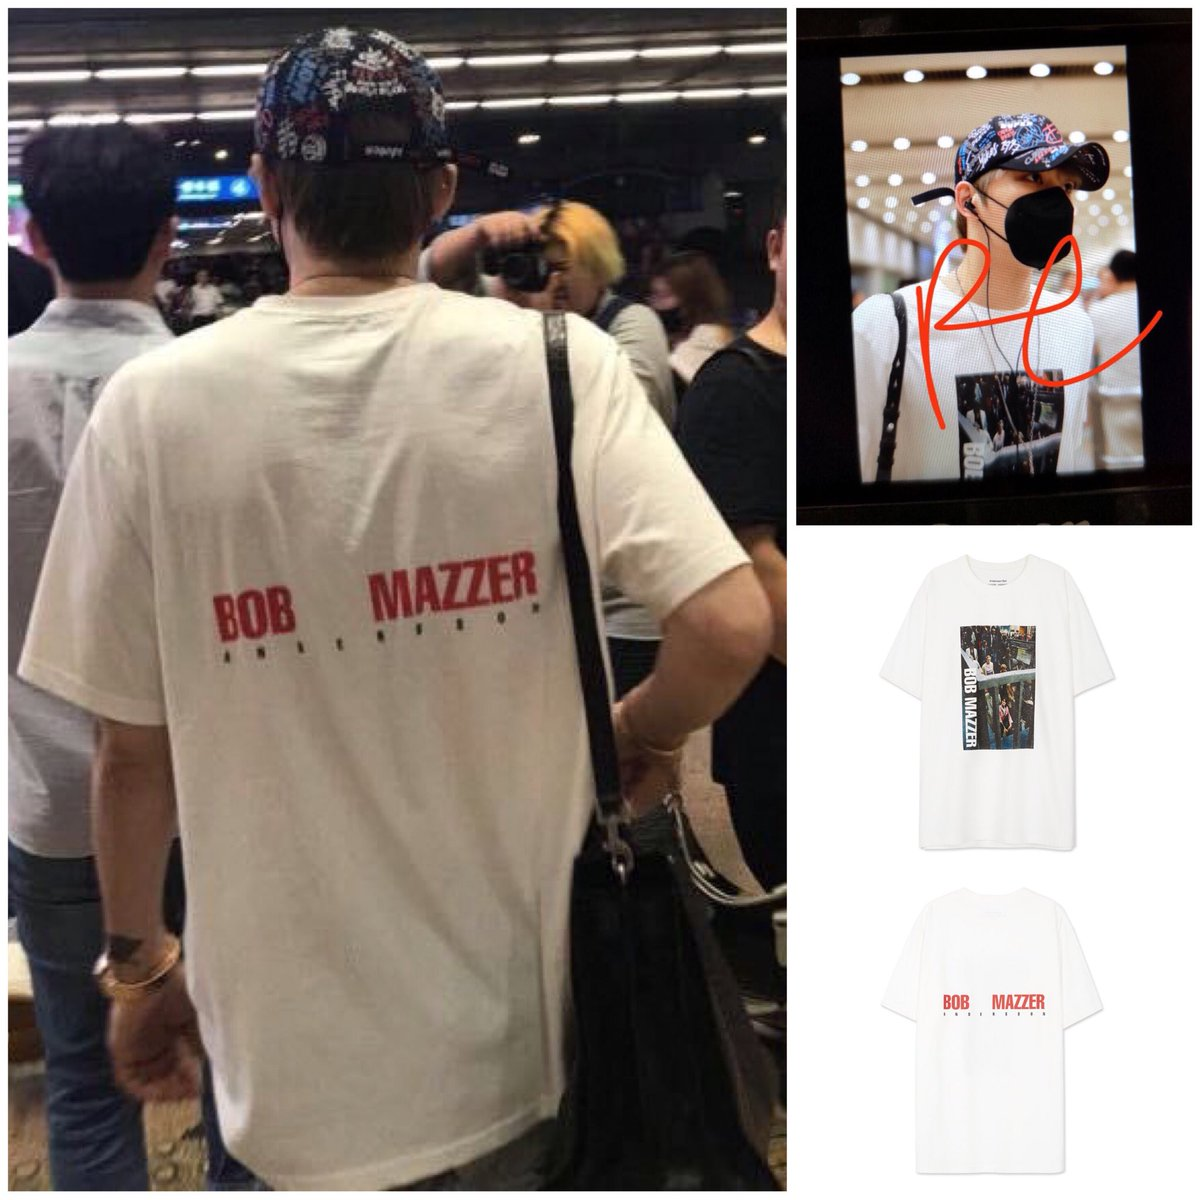 """: ANDERSSON BELL 2018 Resort Collection """"Bob Mazzer Collaboration T-Shirt"""" : $52.34 now at $36.64 : 2018.08.15 Seoul to Beijing airport : anderssonbelldotcom and Shimmerkjj thru Jaefans Global  #kimjaejoong #jaejoong #jj #김재중 #ジェジュン #金在中 #airportfashion<br>http://pic.twitter.com/df4sgtcIvS"""